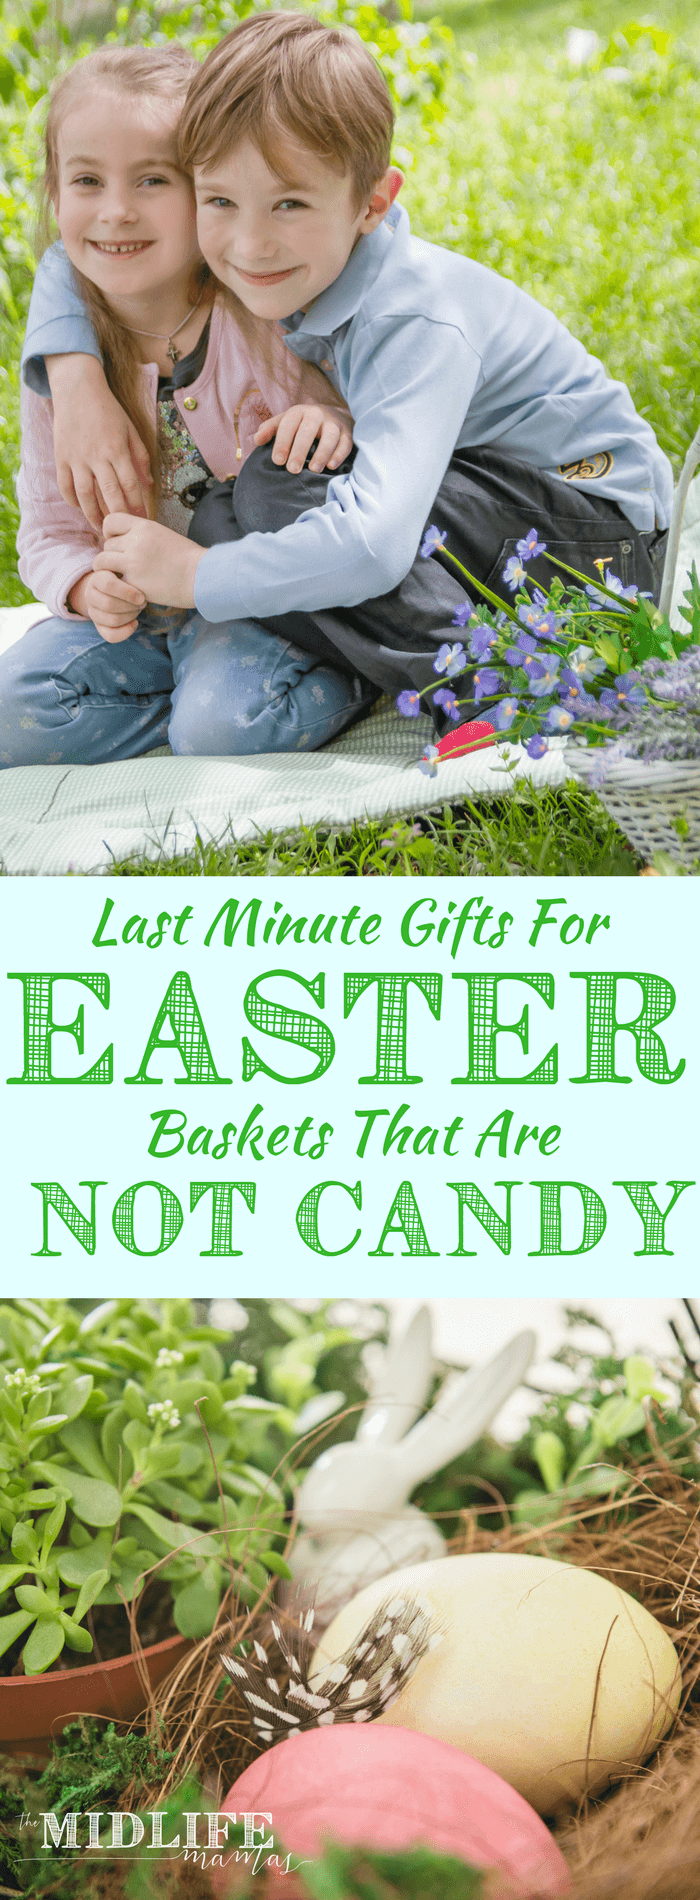 Are you desperately searching for last minute gift ideas for Easter baskets without candy? Even though I was behind, I was looking for creative alternatives to just stuffing the Easter baskets with candy. I loved these unique filler ideas for boys or girls and this list was a life saver! #Easterbaskets #gifts www.themidlifemamas.com